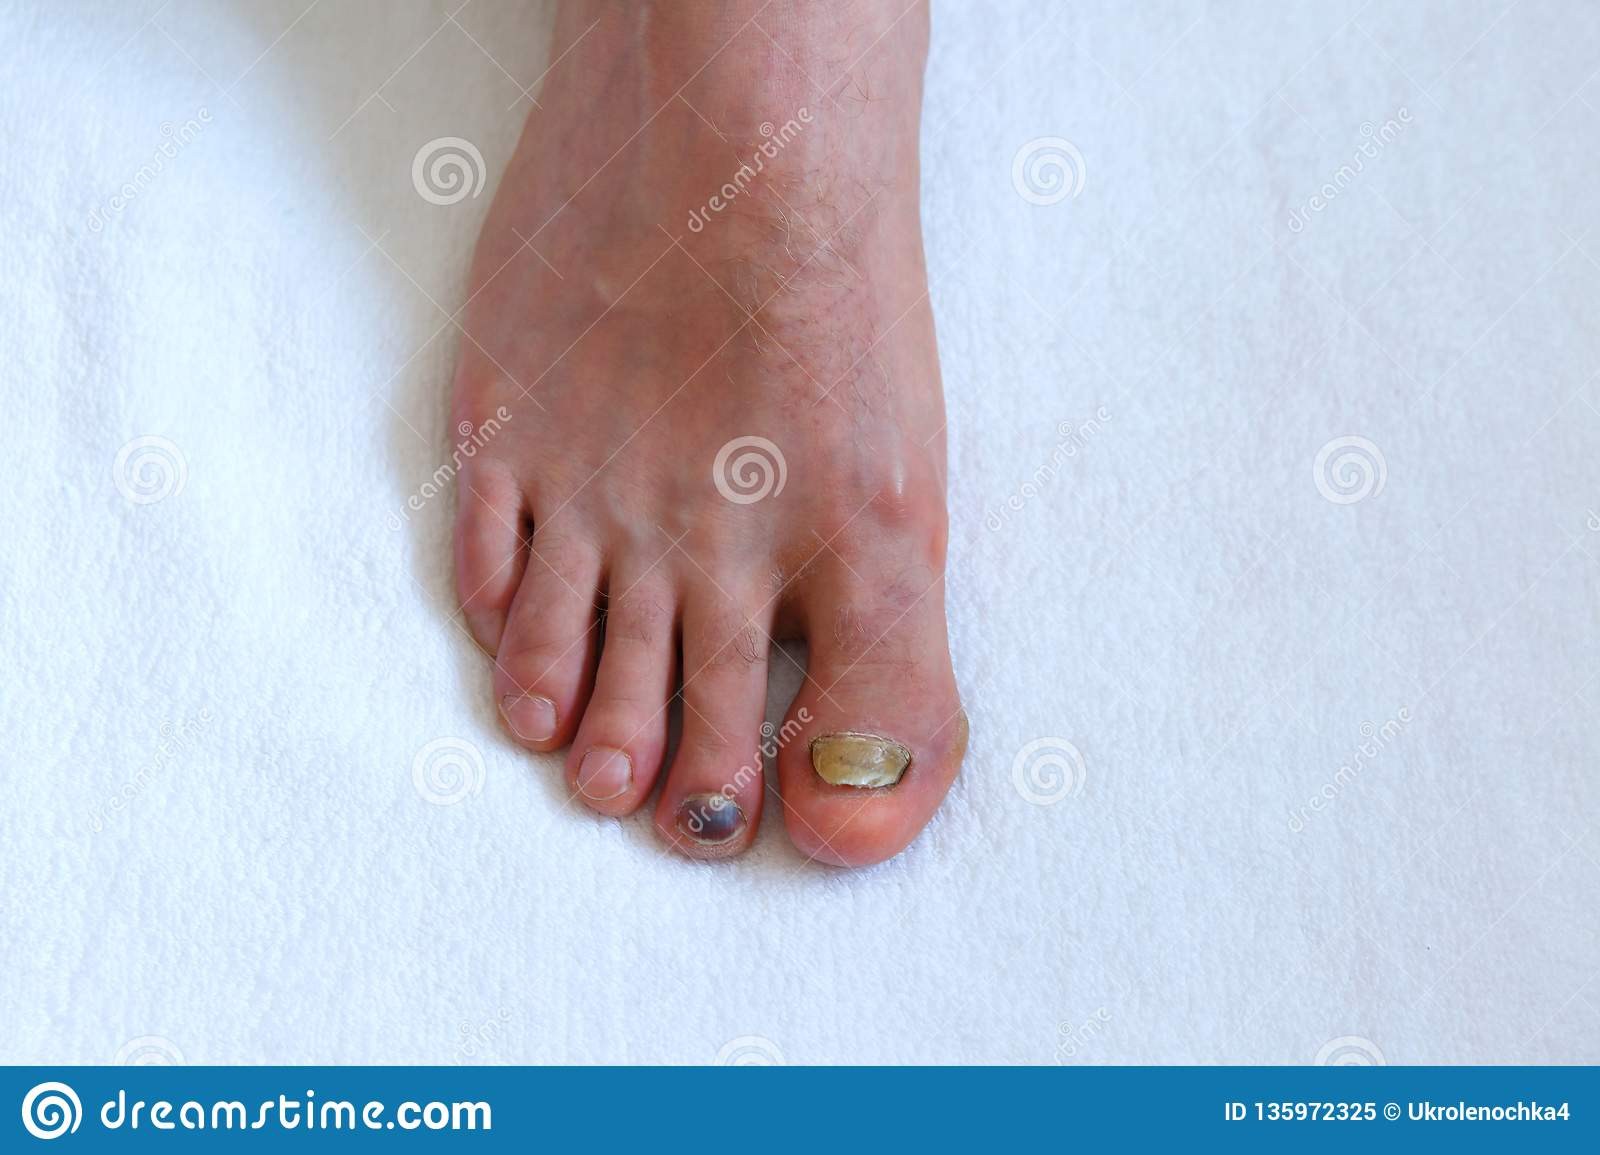 Human Male Foot With Bruised Black On Toe Nails On White Background ...